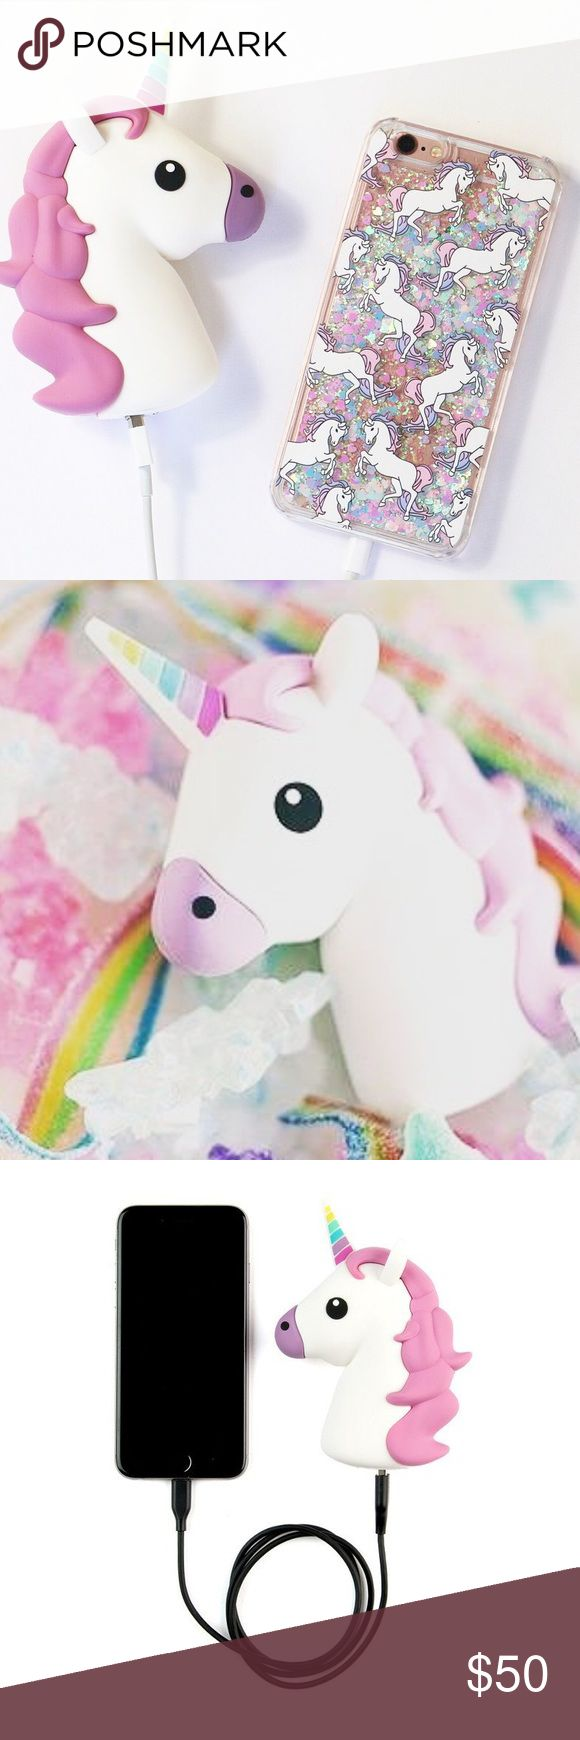 UNICORN PORTABLE CHARGER WITH GLITTER CASE ✨ The most magnificent charger ever! Perfect for charging your phone on the go!  Up to 2 Full Charges! 2700 MAH Capacity  Includes Micro Charging USB Cable (to recharge the emoji battery) Available in other great styles Supports iOS and Android devices only.               Price is firm! No trades! Last one!! Accessories Phone Cases